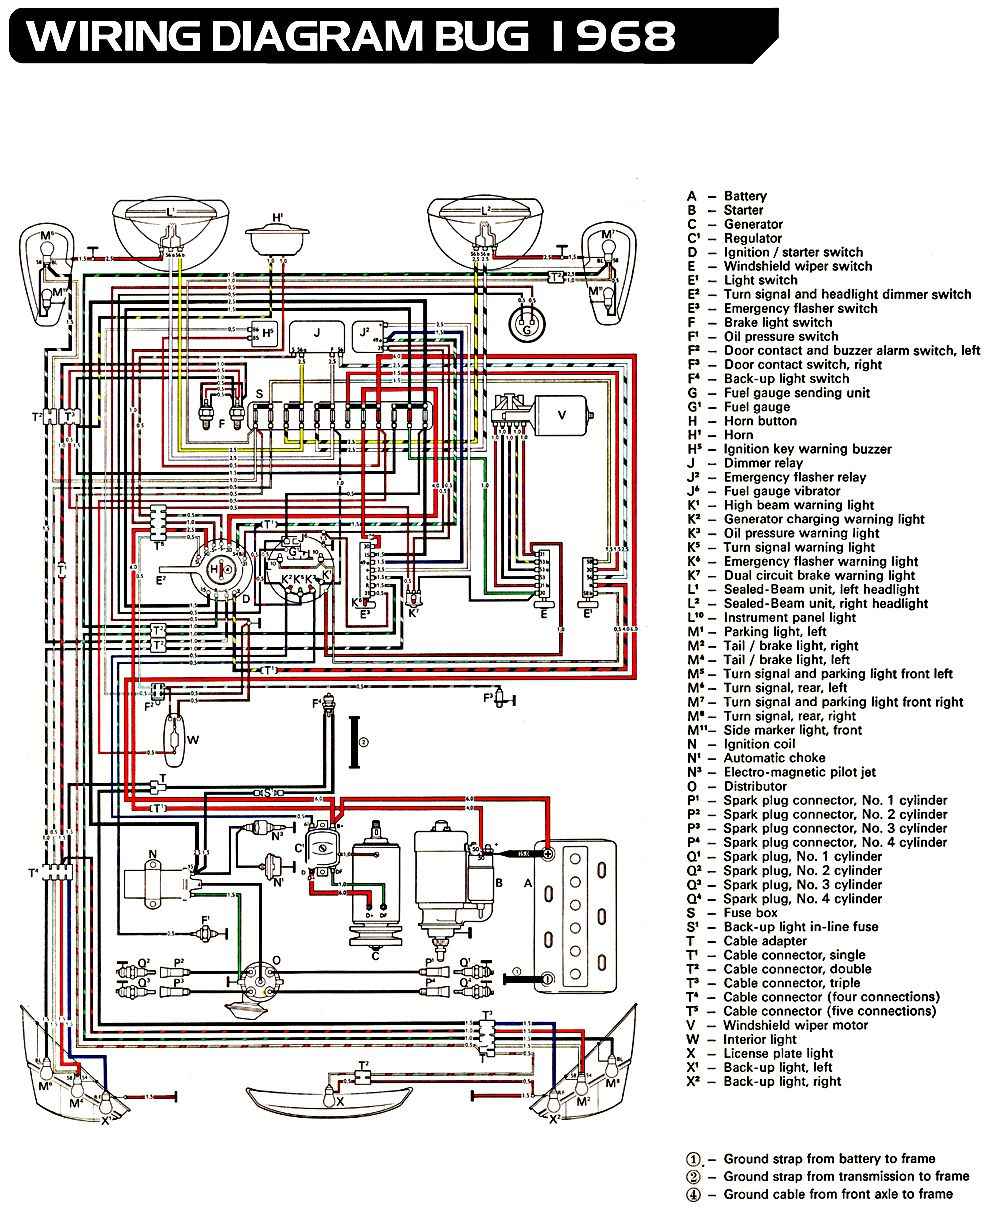 3a1908112d3826270ed5e3be362292bf vw bug ignition wiring diagram 73 vw wiring diagram free vw ignition wiring diagram at soozxer.org